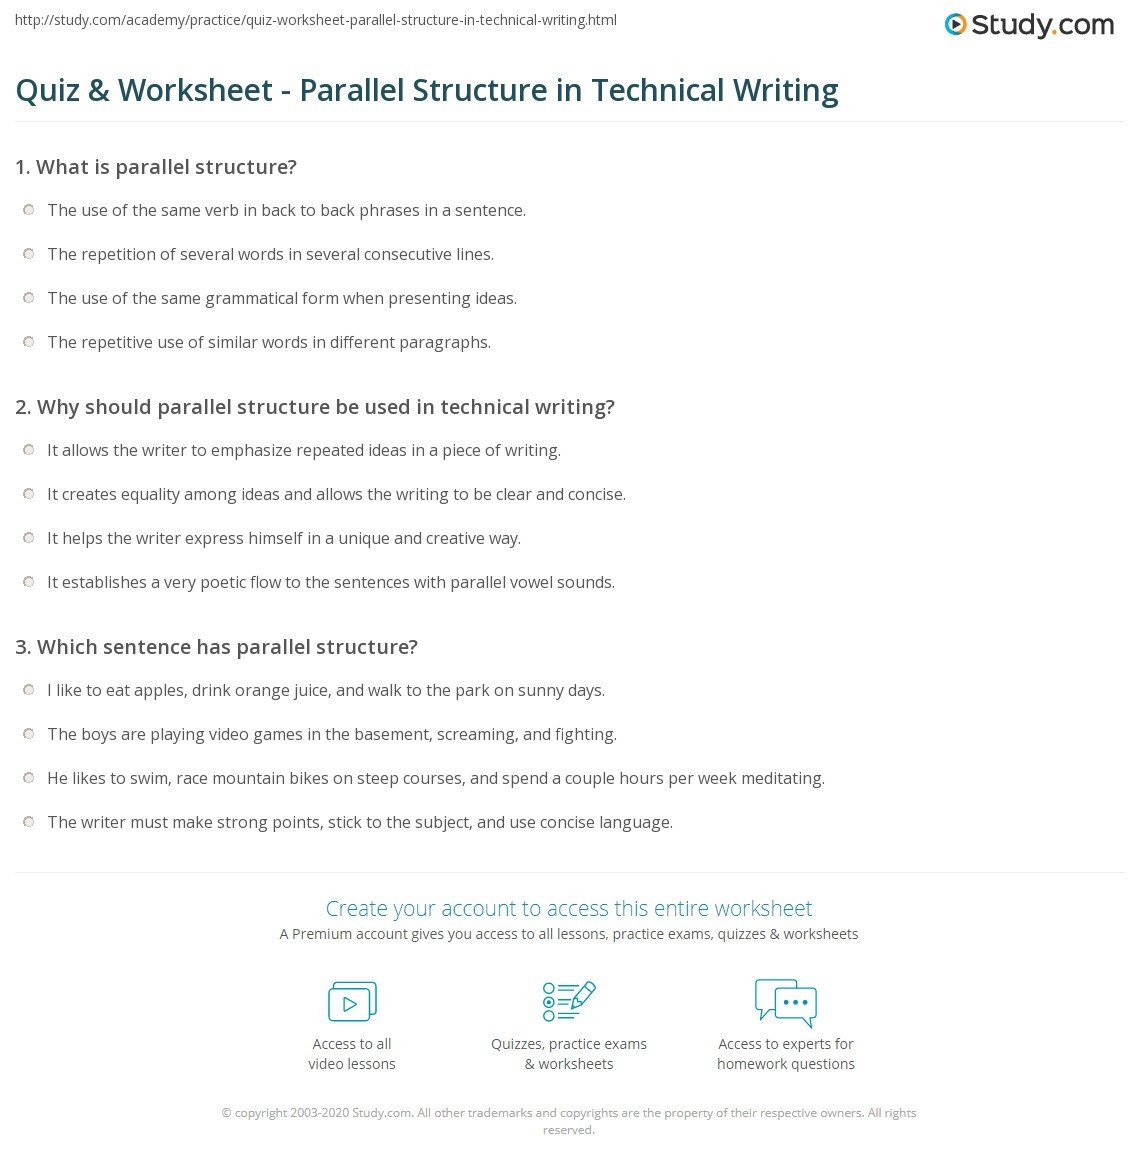 Grammar Worksheets Parallelism Answers Parallelism Worksheet with Answers Worksheet List